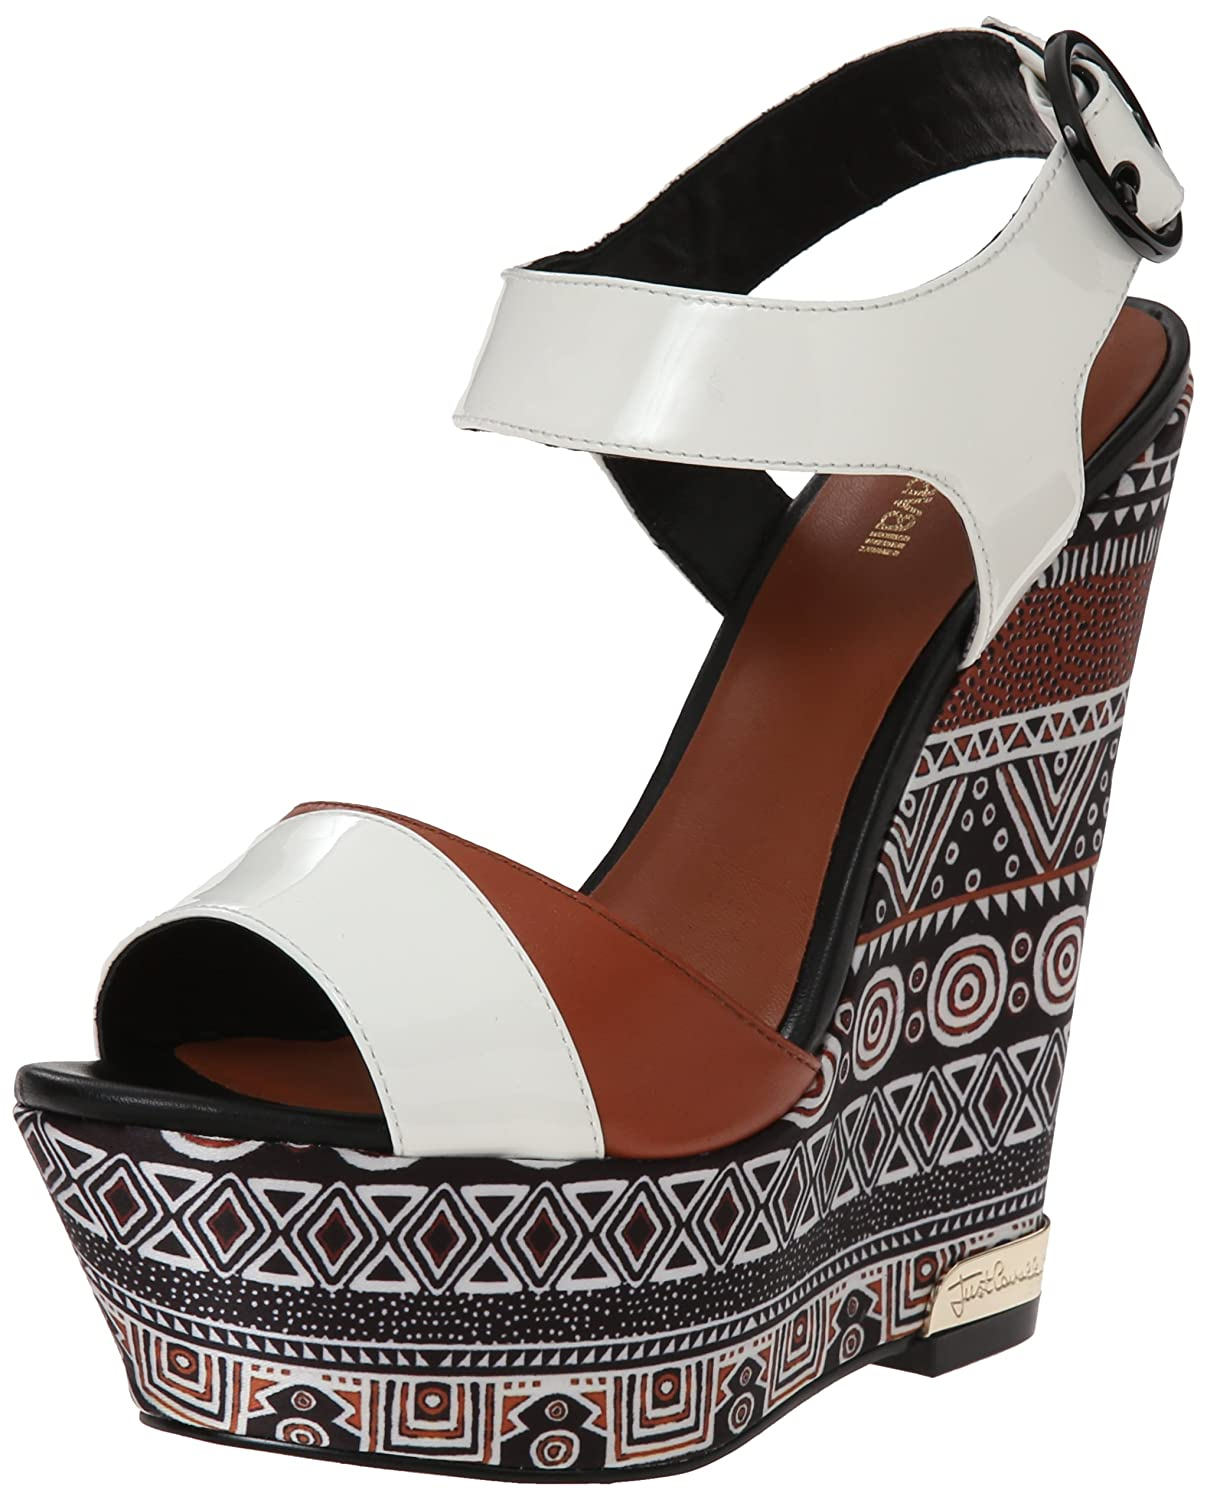 sale retailer e5e2c 5418e Just Cavalli Women's Africa Print Wedge Sandal, Brown, 41 EU ...